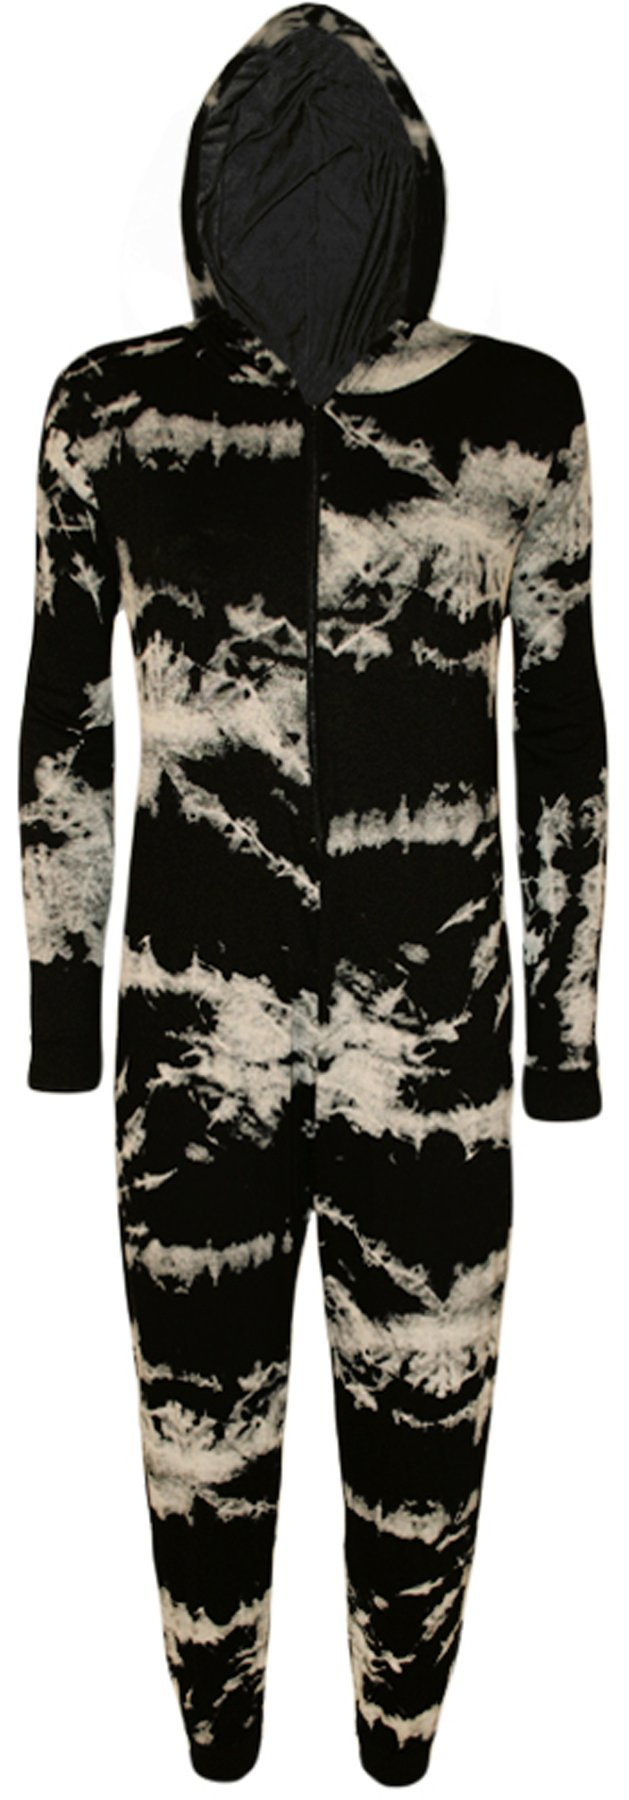 Women's Tie Dye Print Onesie LAdies Playsuit Long Hooded Jumpsuit